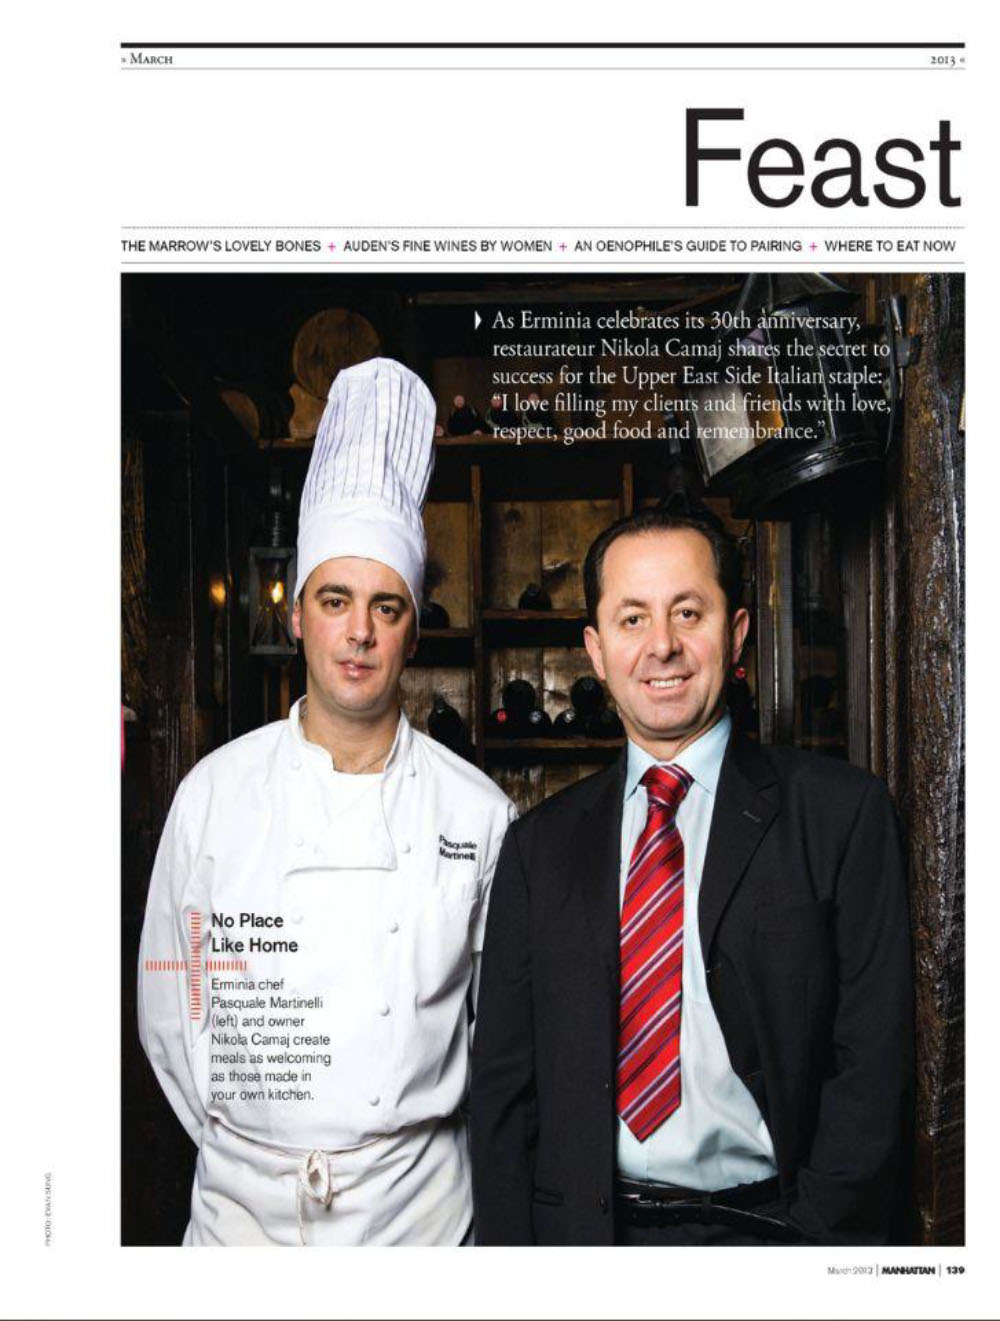 Chef Pasquale Martinelli featured on Manhattan Magazine by CNN anchor Chris Cuomo